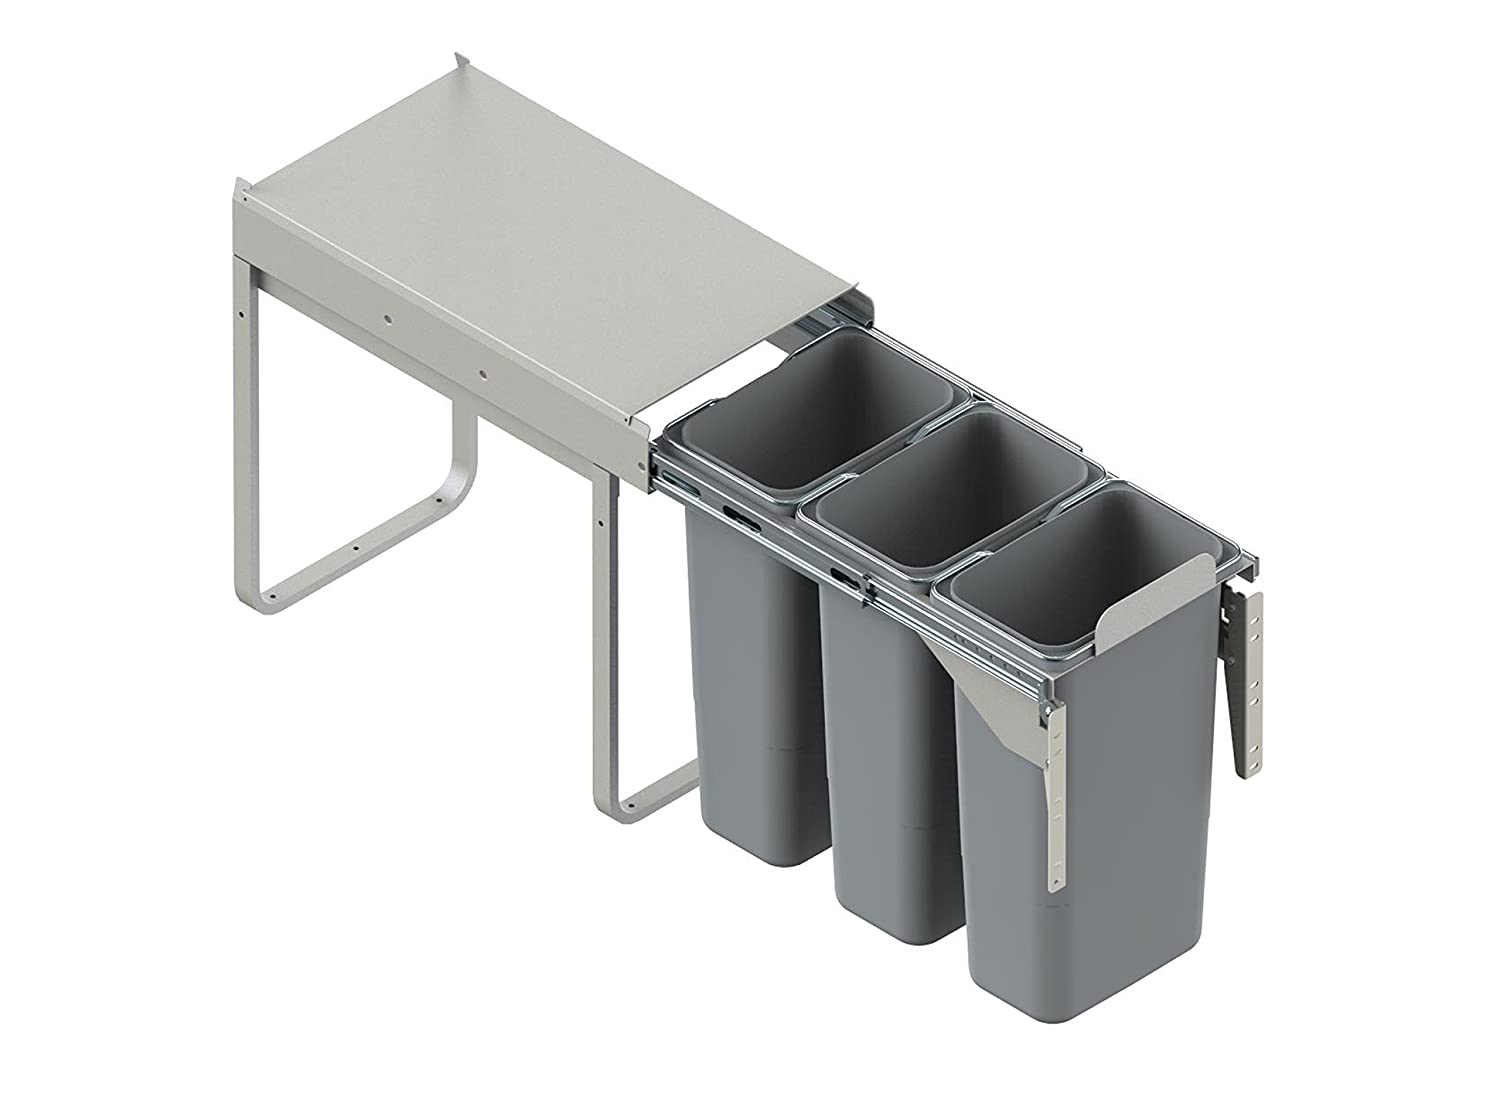 RECYCLE BIN PULL OUT SOFT CLOSE KITCHEN WASTE BIN 300MM - 30 LTR (JC-604) by REJS (with front fixing brackets)